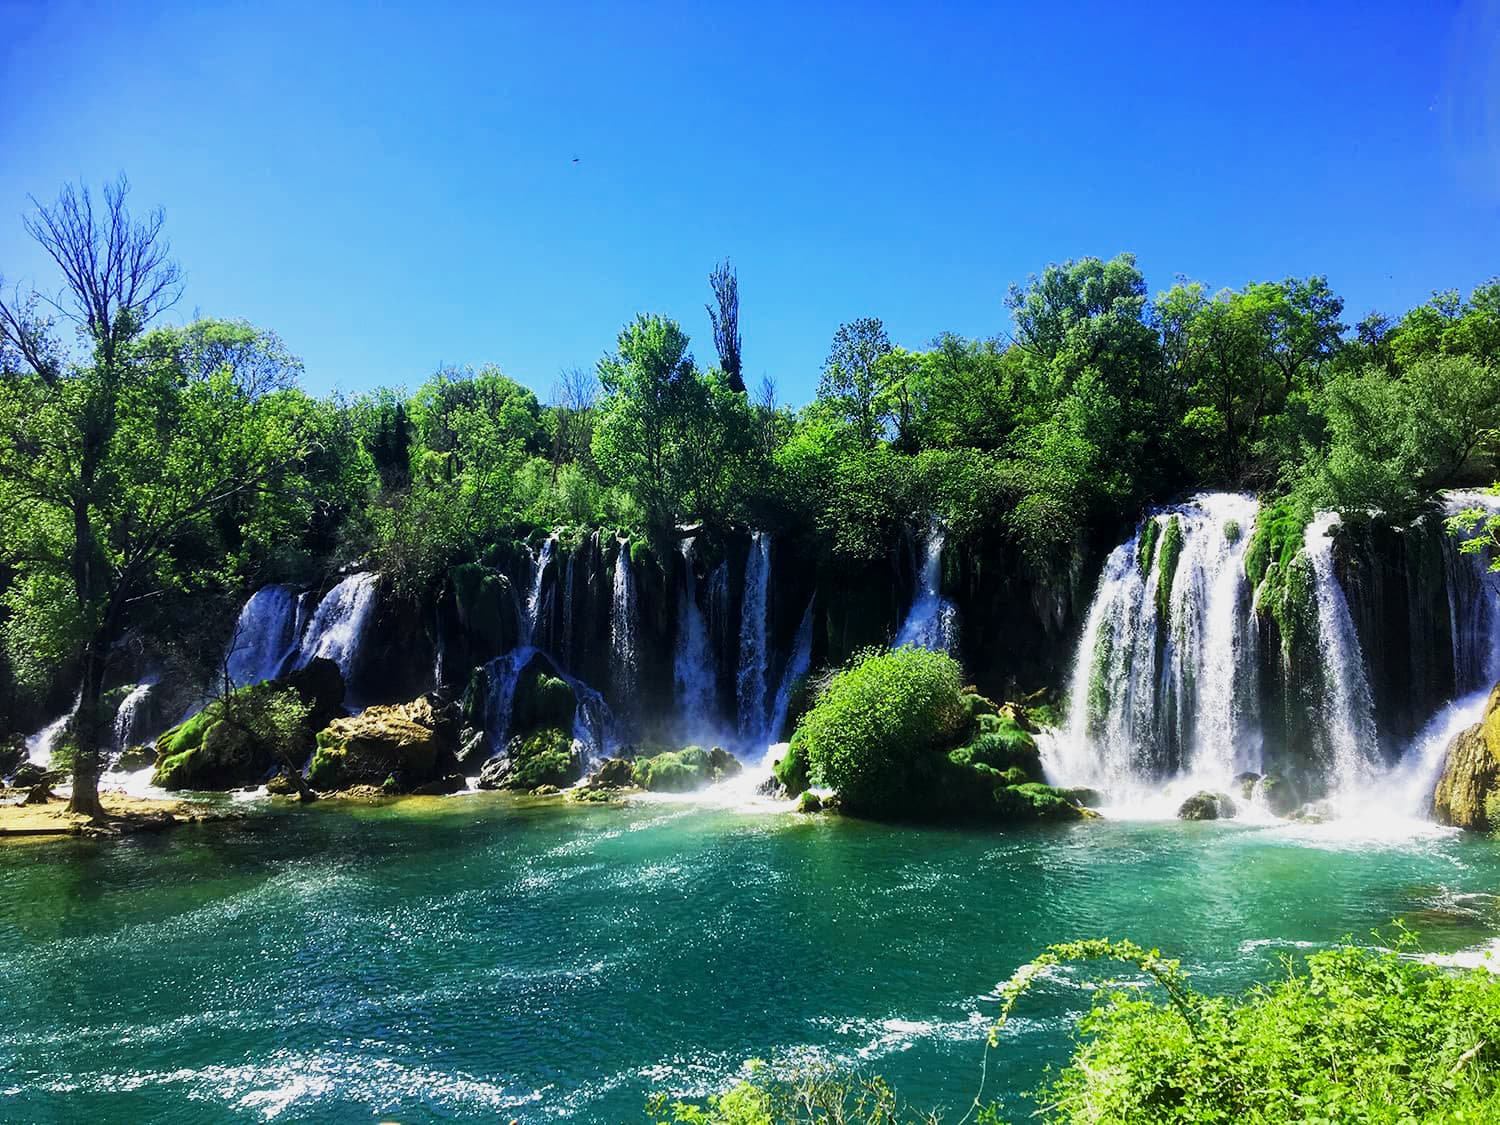 The beautiful Kravice Waterfalls in southern Bosnia and Herzegovina.